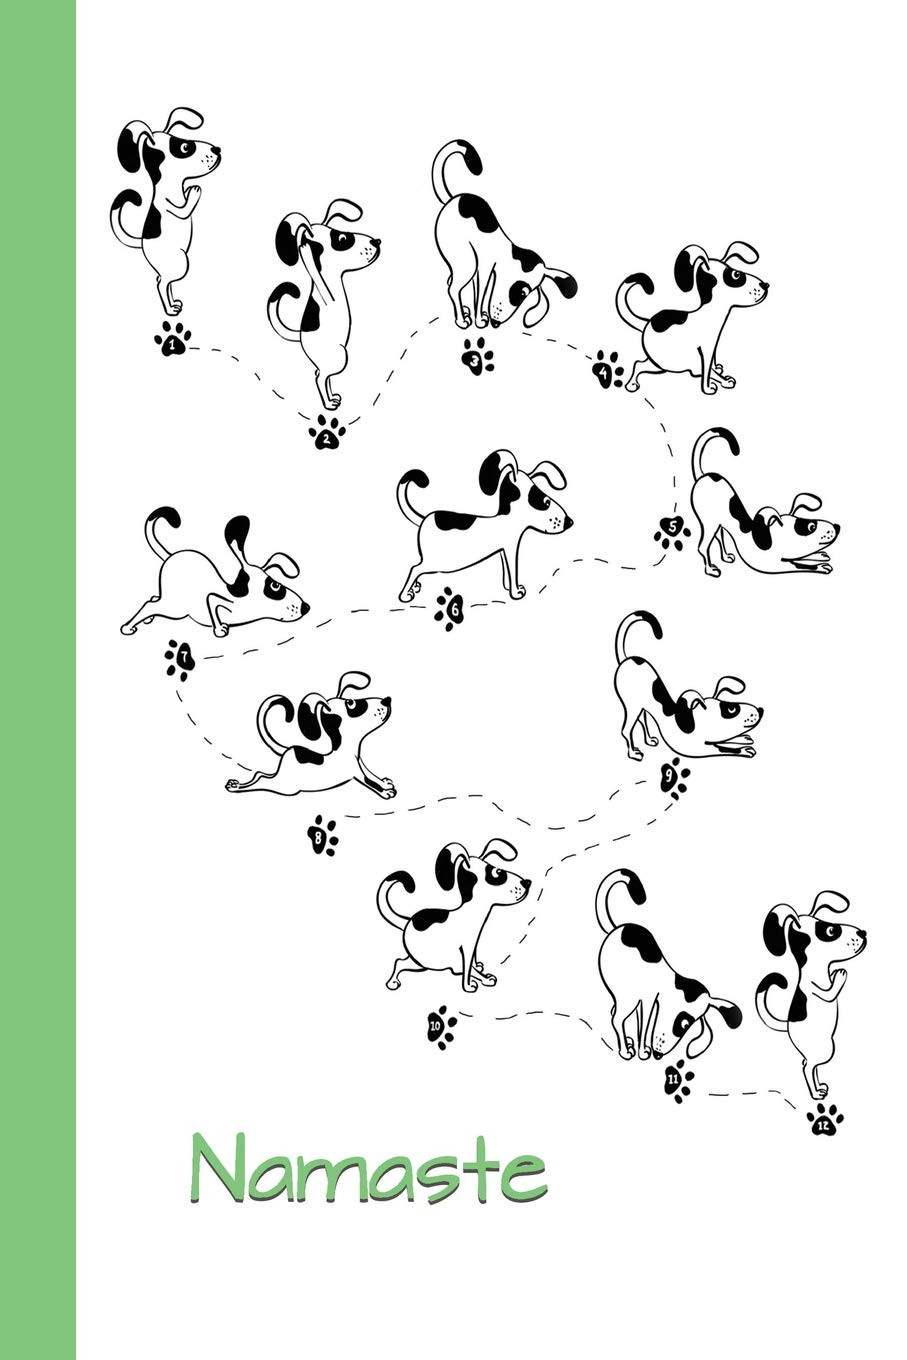 Sketchbook: Dog Yoga (Namaste/Green) 6x9 - BLANK JOURNAL WITH NO LINES - Journal notebook with unlined pages for drawing and writing on blank paper (Dogs & Puppies Sketchbook Series) pdf